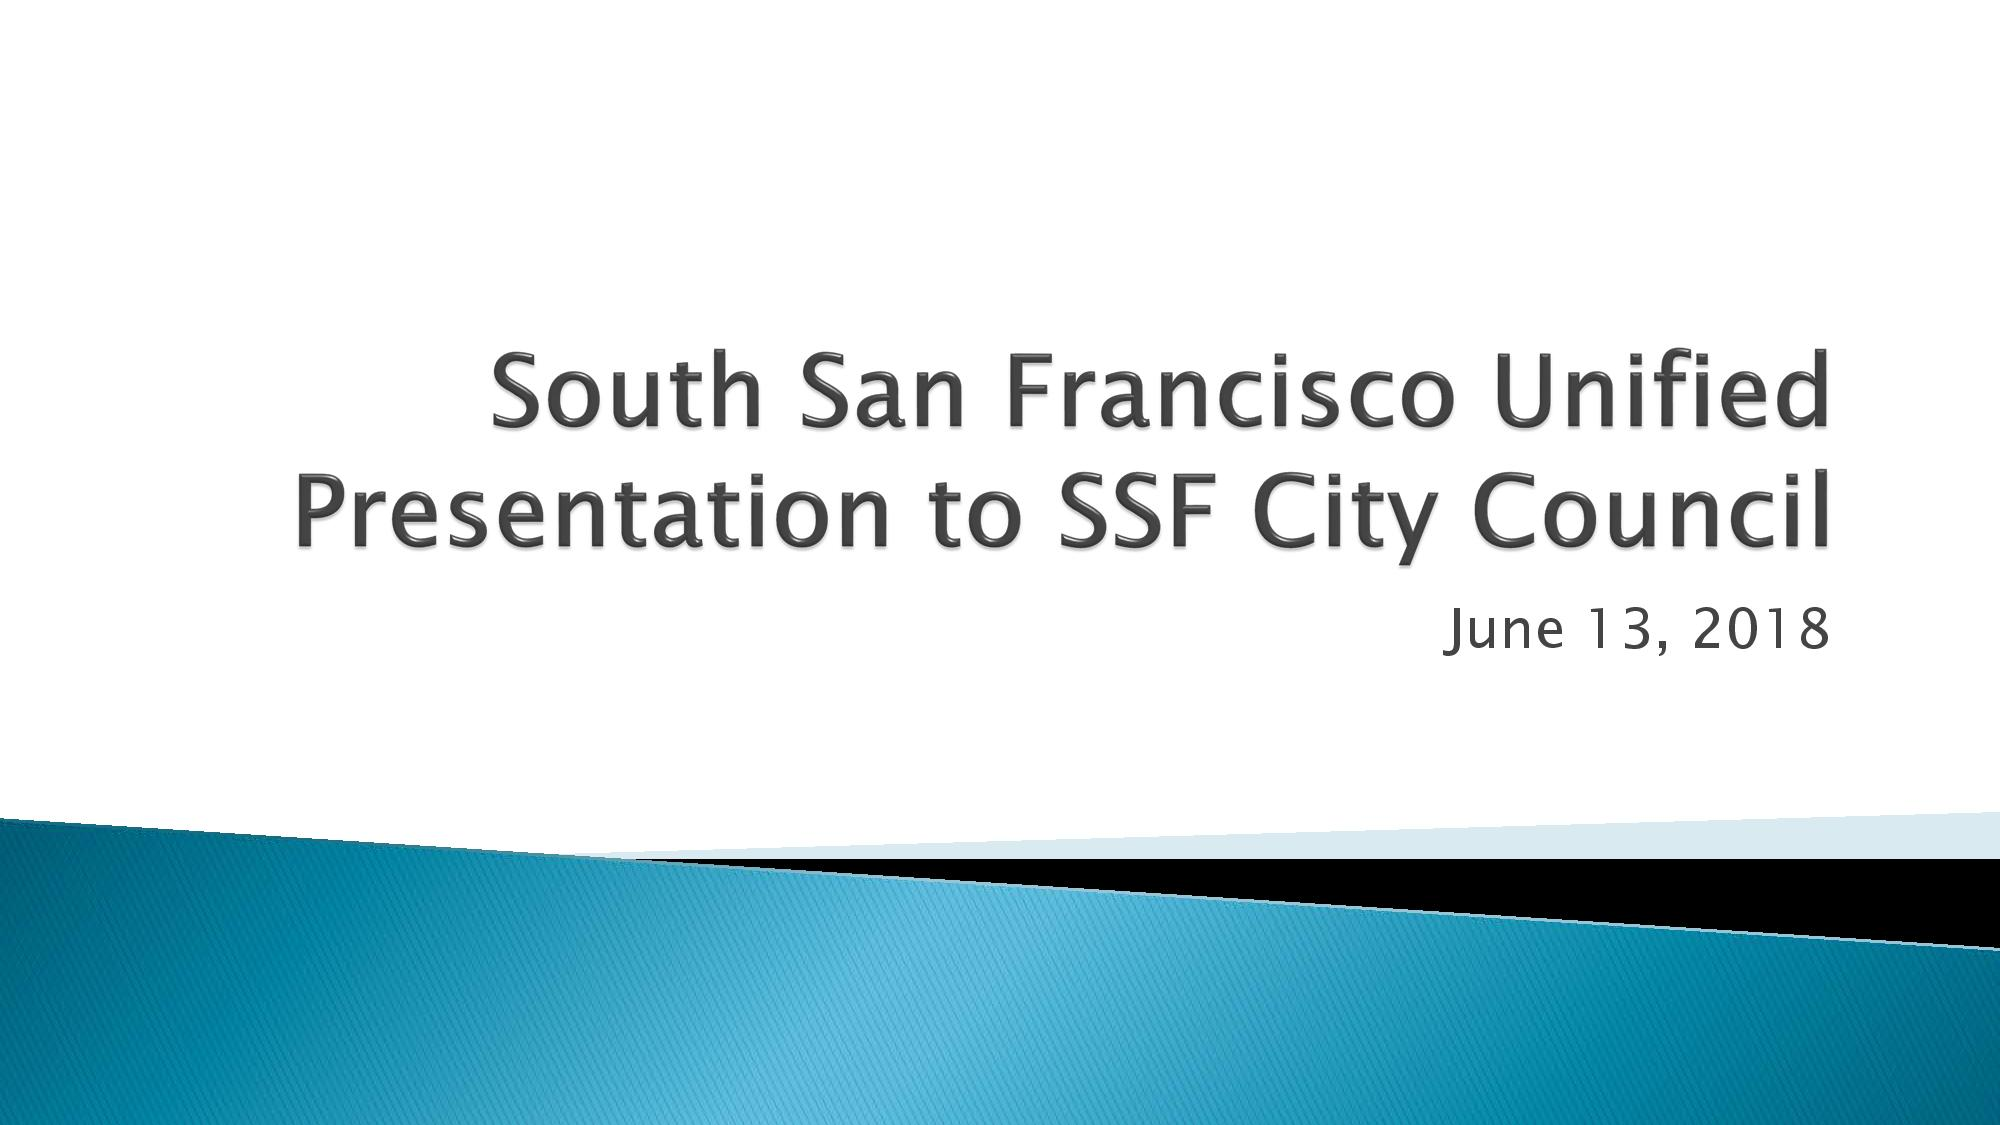 South San Francisco Unified School District to Present Updates to City Council Wednesday June 13th 7pm